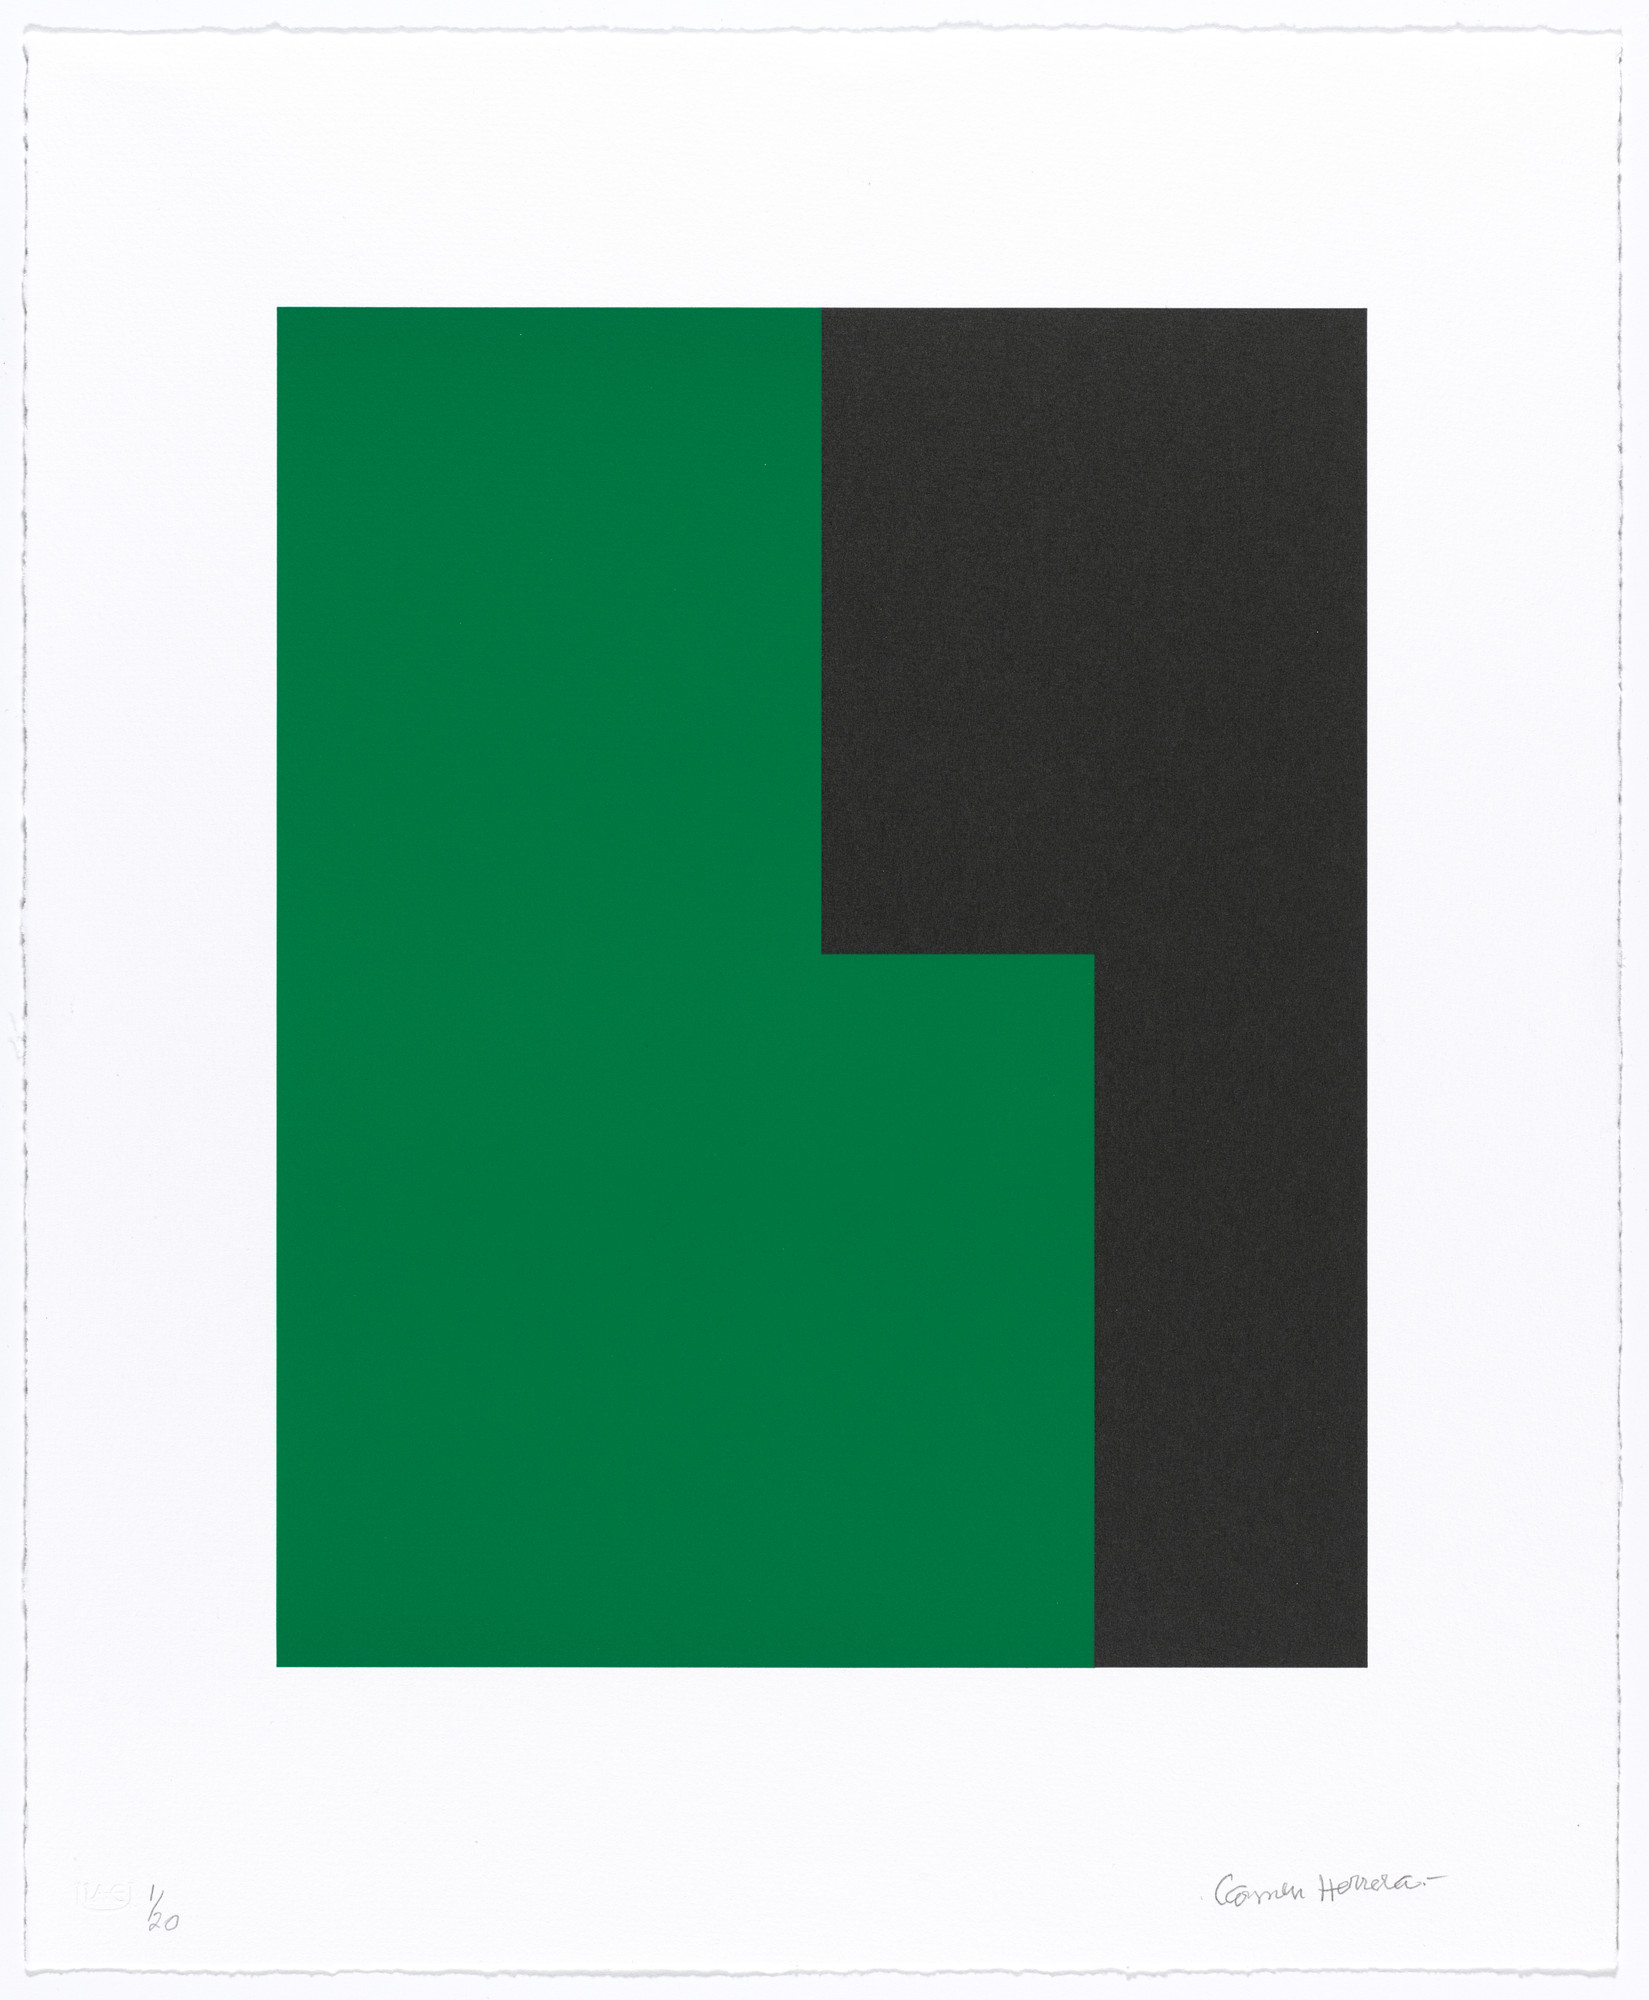 Carmen Herrera. Untitled from Verde y Negro. 2017